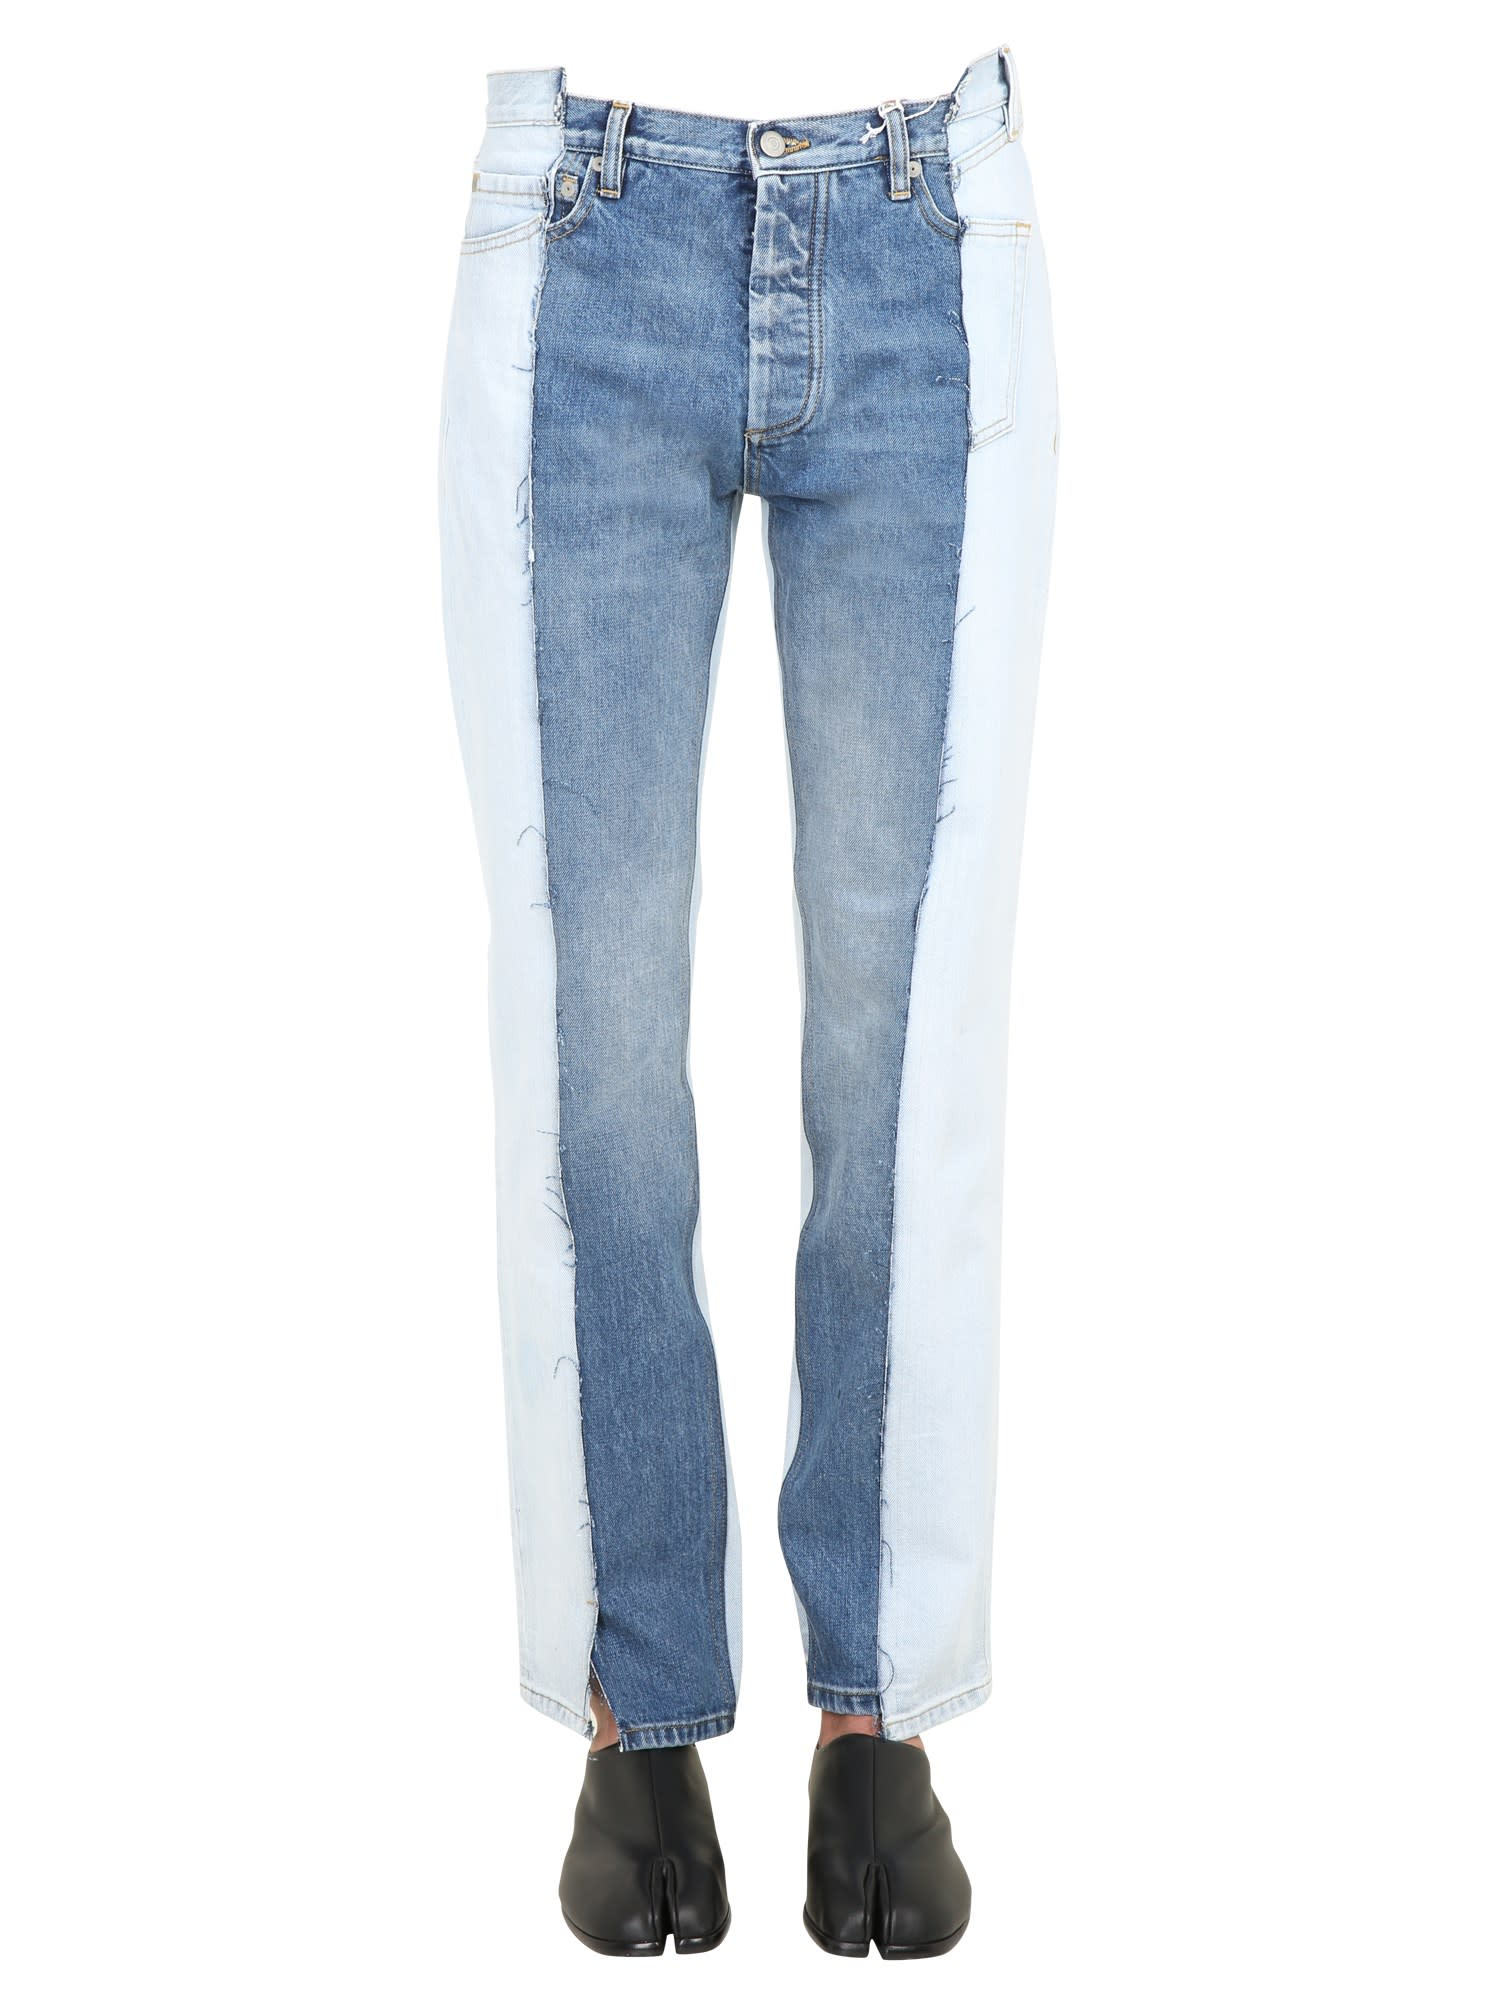 Maison Margiela SPLICED JEANS